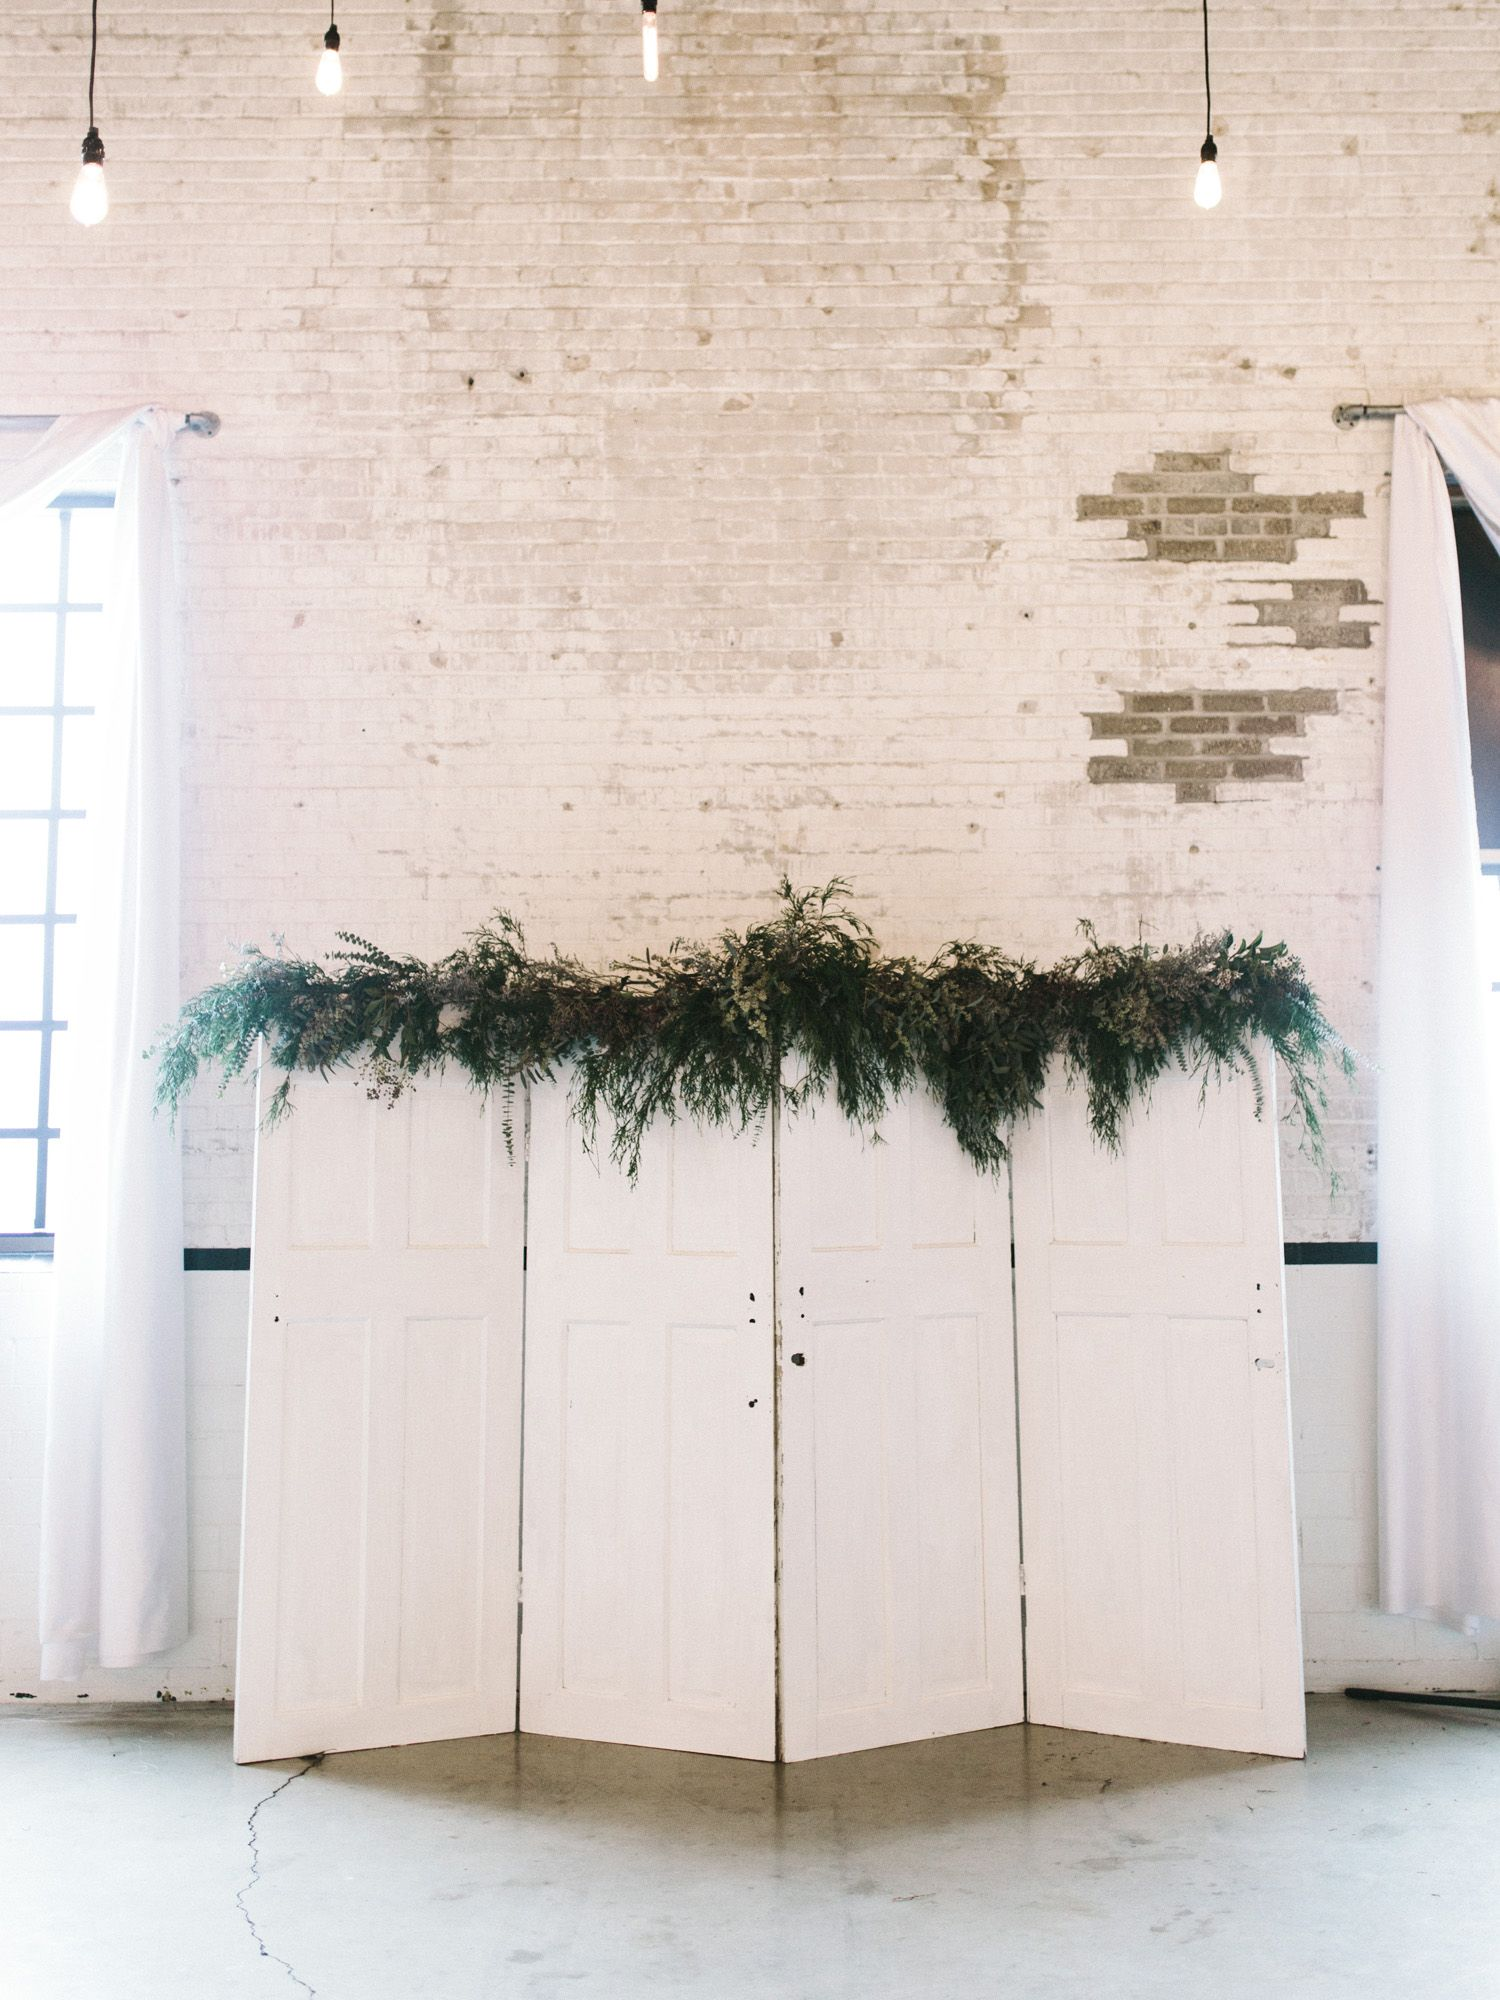 An Industrial Meets Ethereal Wedding at The Brick Brick